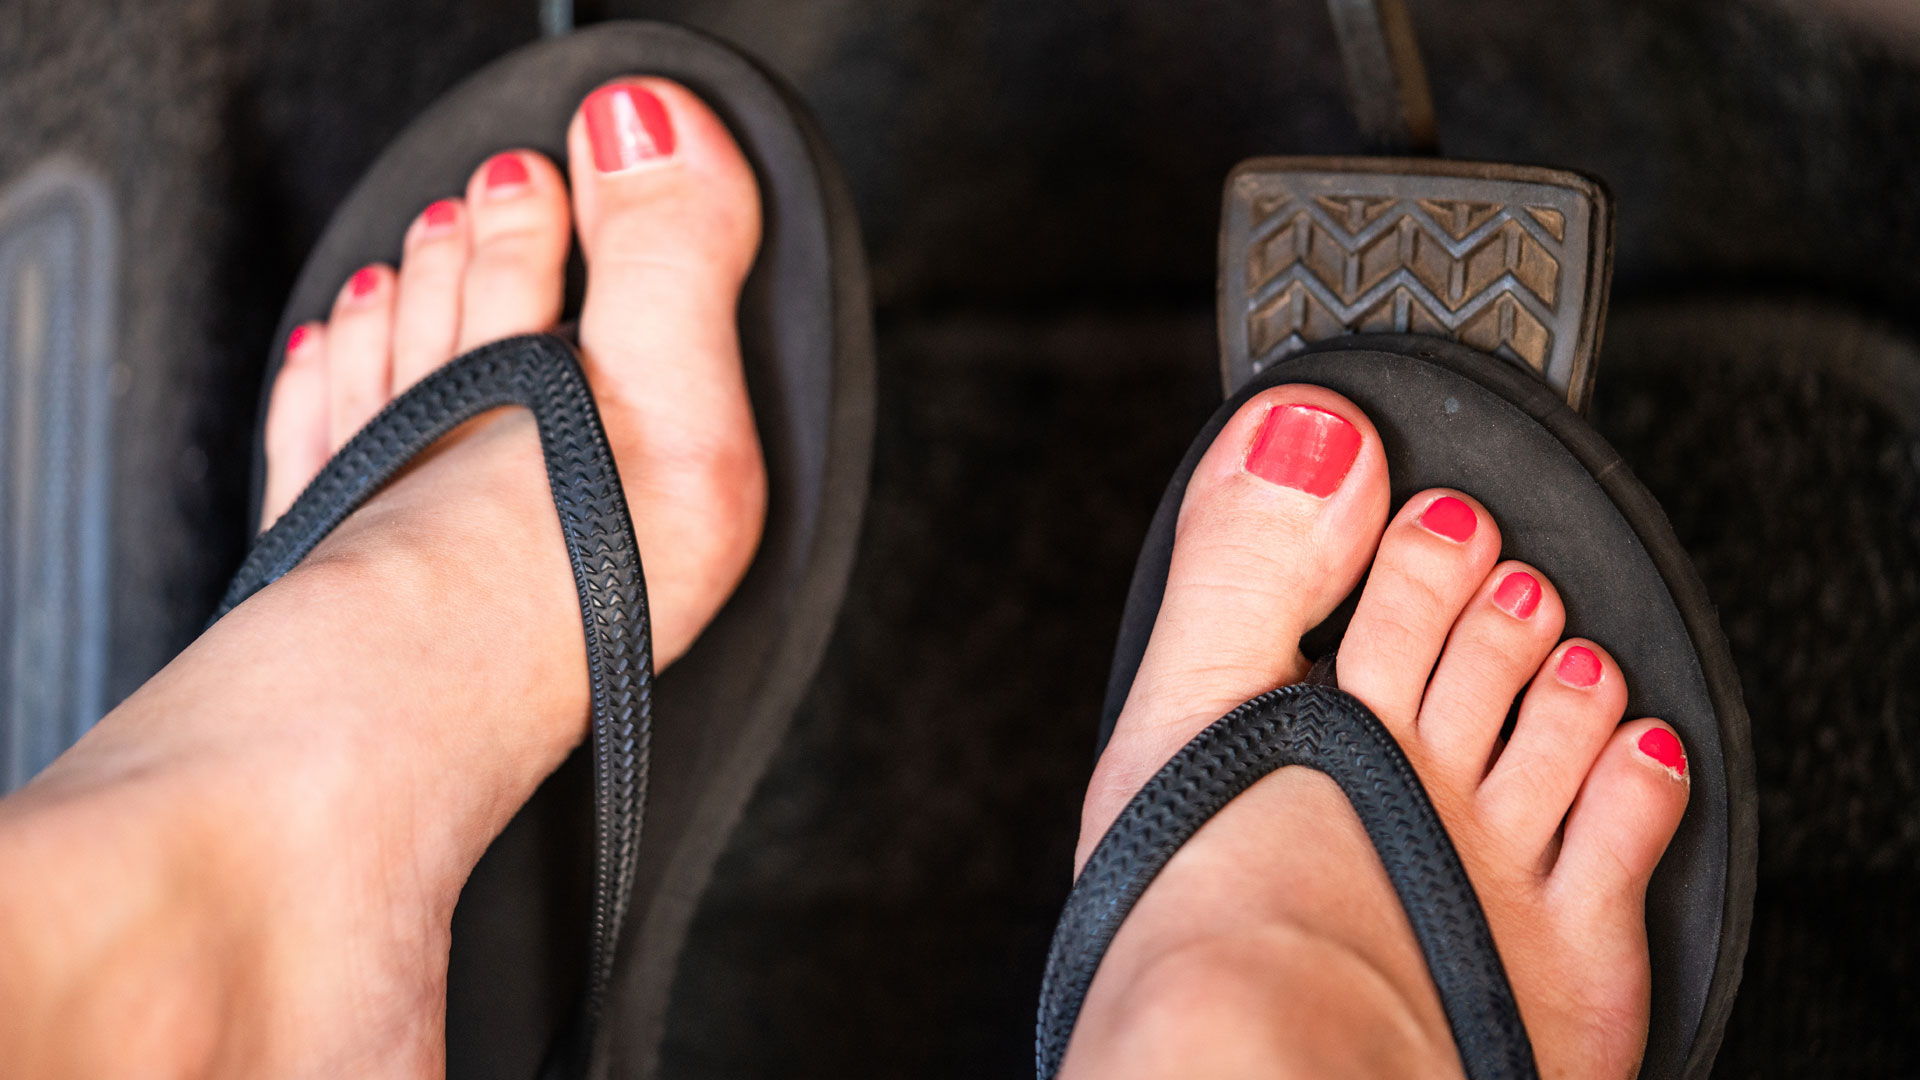 Woman driving in flip flops